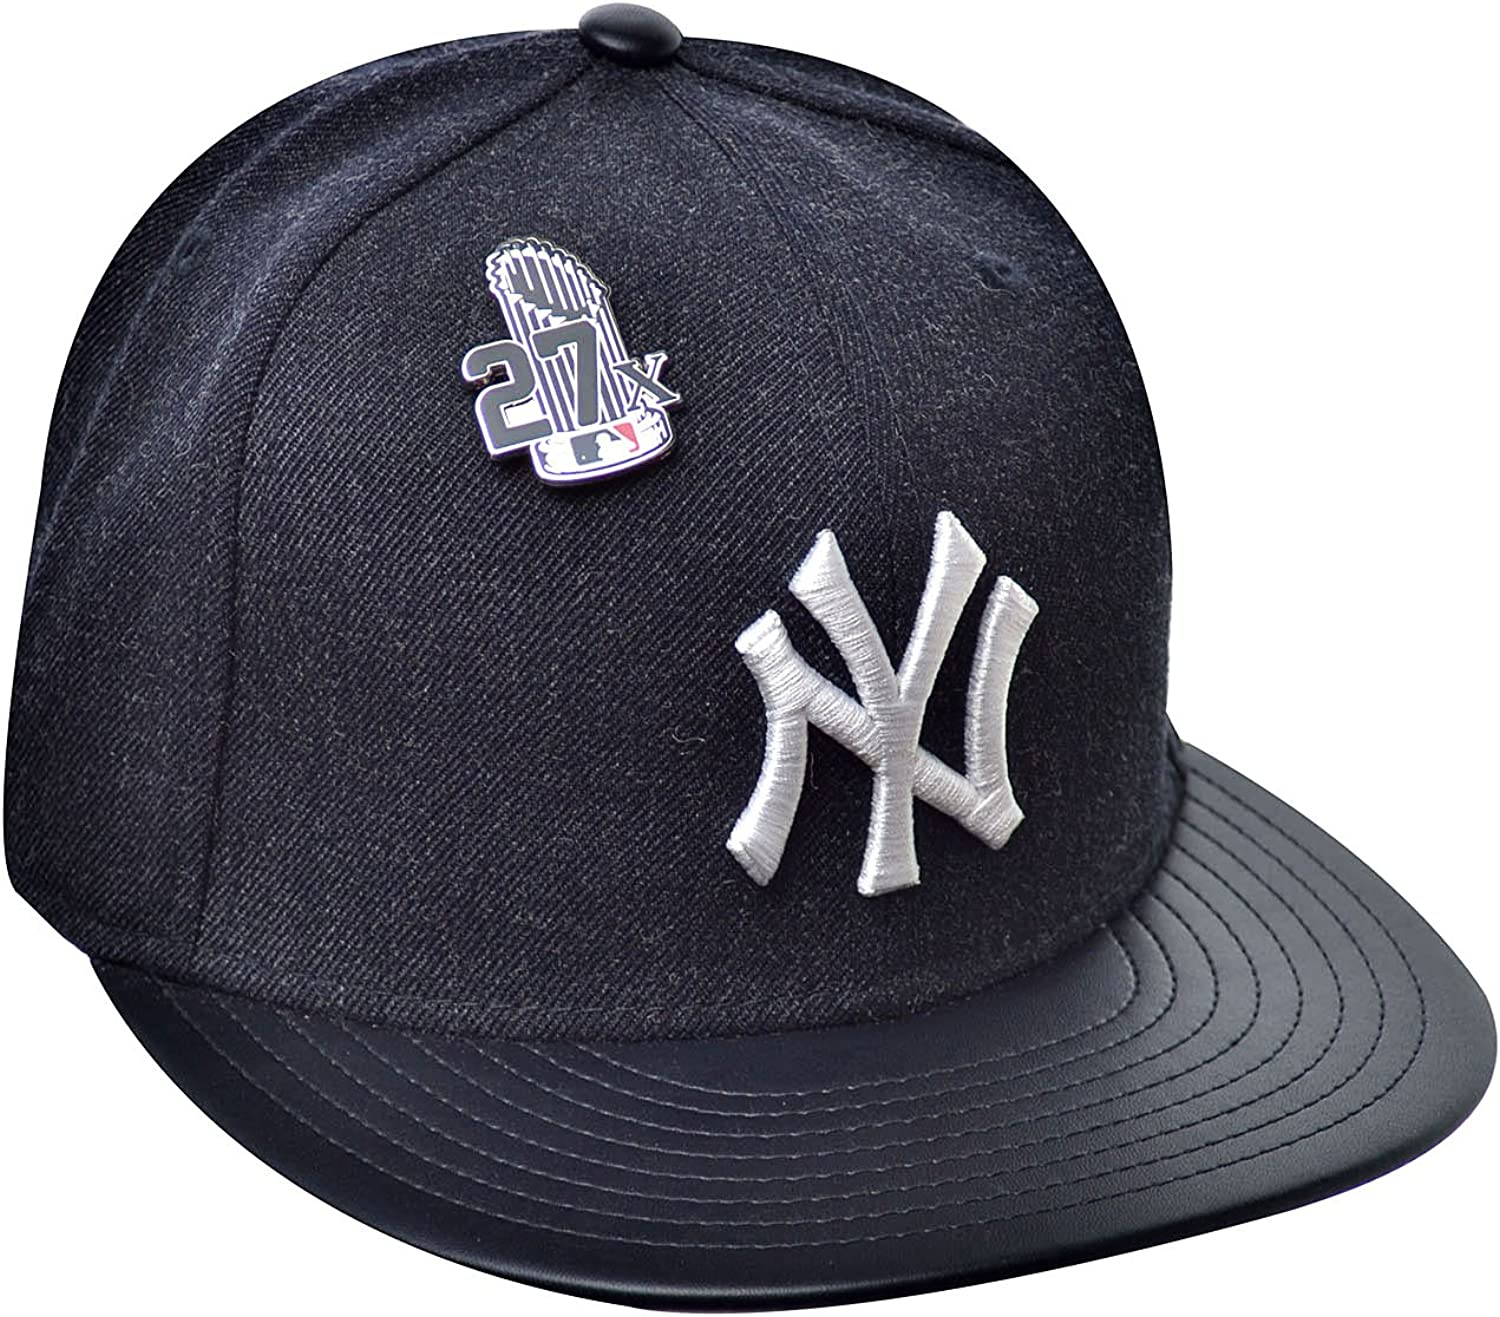 NEW ERA NEW YORK YANKEES FITTED HATCAP 59FIFTY NAVY GREY AMERICAN MEN SZ 7-8